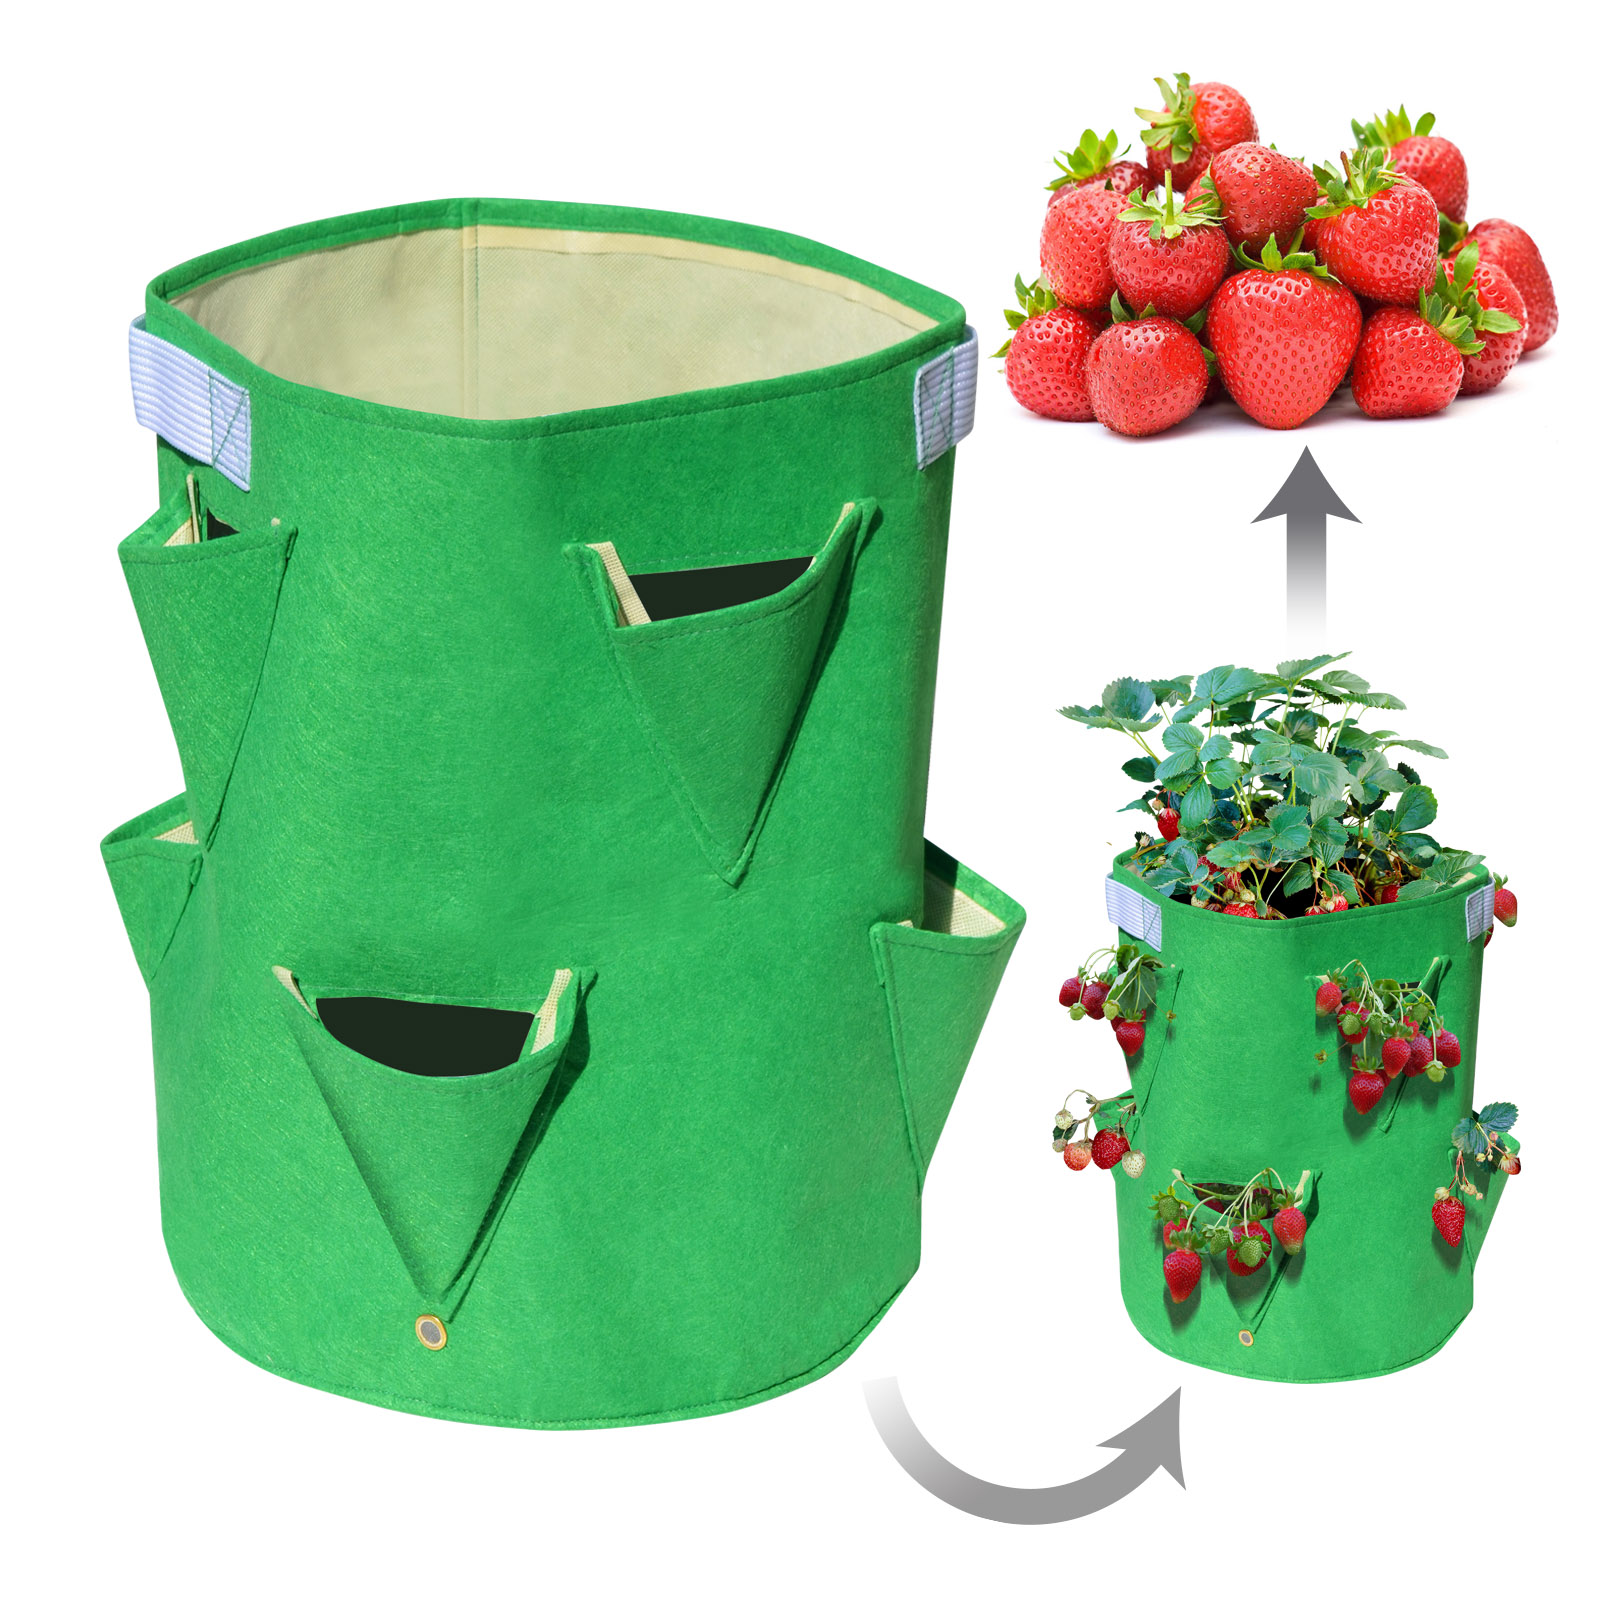 Strong Camel Planter Bag Felt Fabric Garden Planting Bag Grow Strawberry and Herb Plant Tub 5 Pack